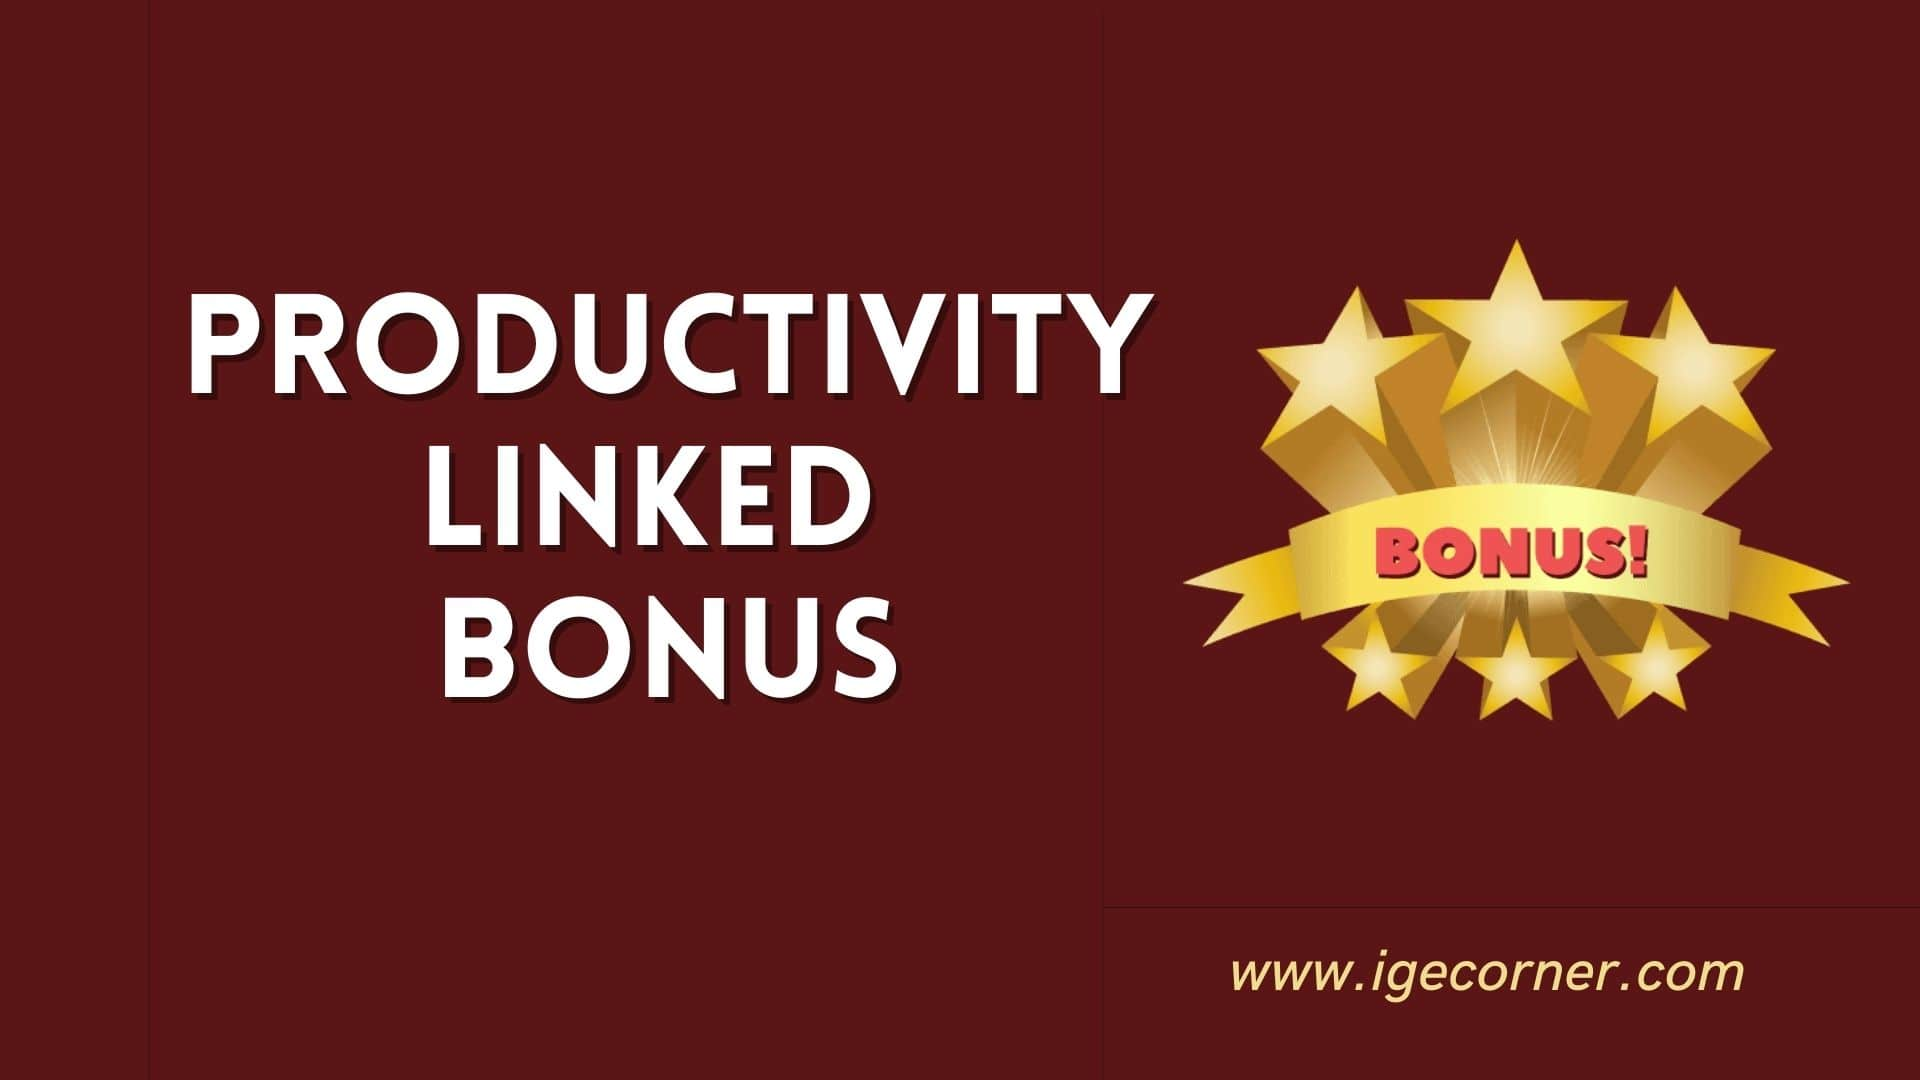 Productivity Linked Bonus 2020